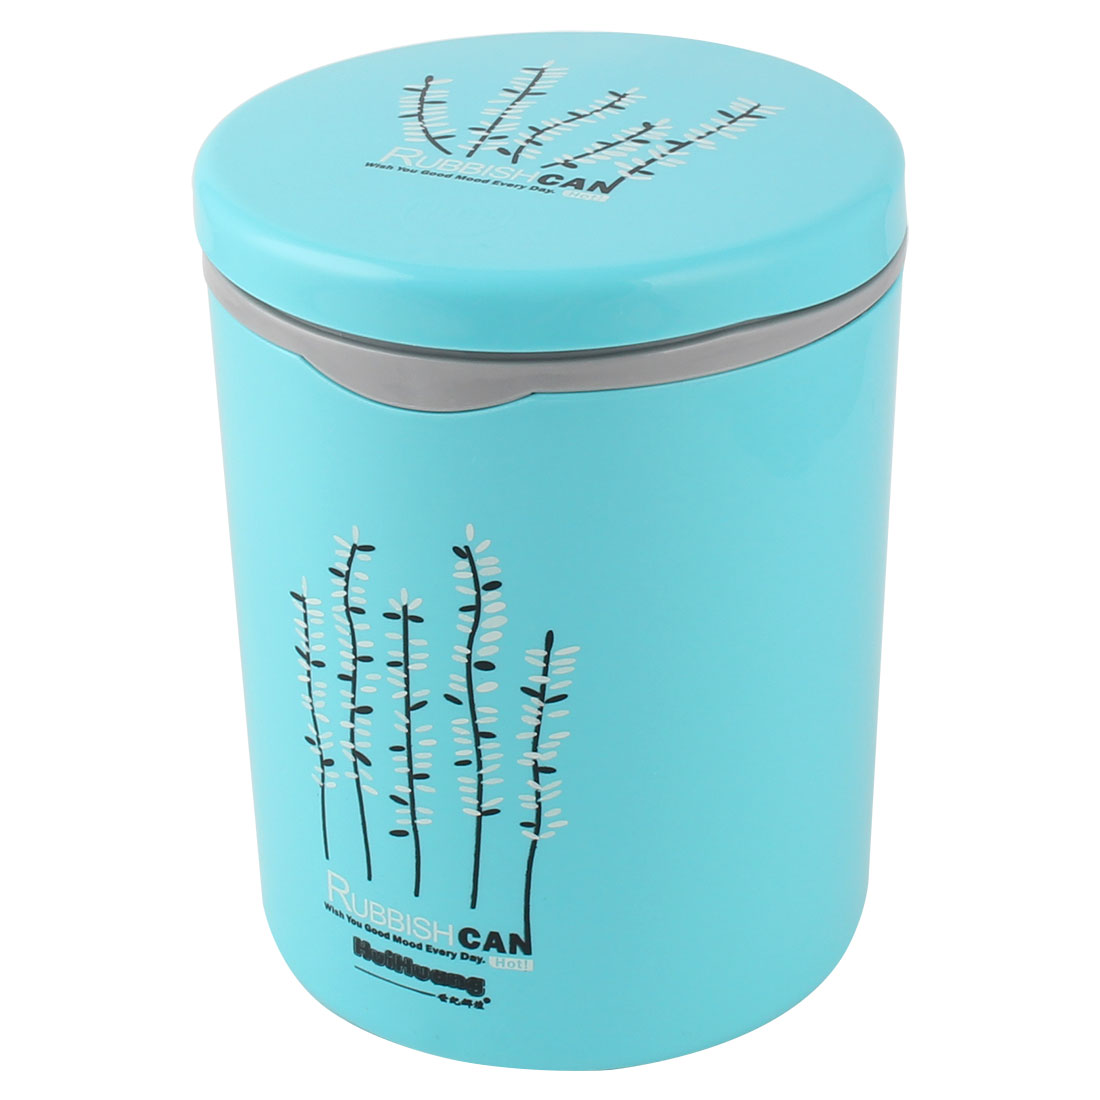 Push-button Desktop Storage Trash Rubbish Can Dustbin Waste Container 13.5 x 18cm Sky Blue